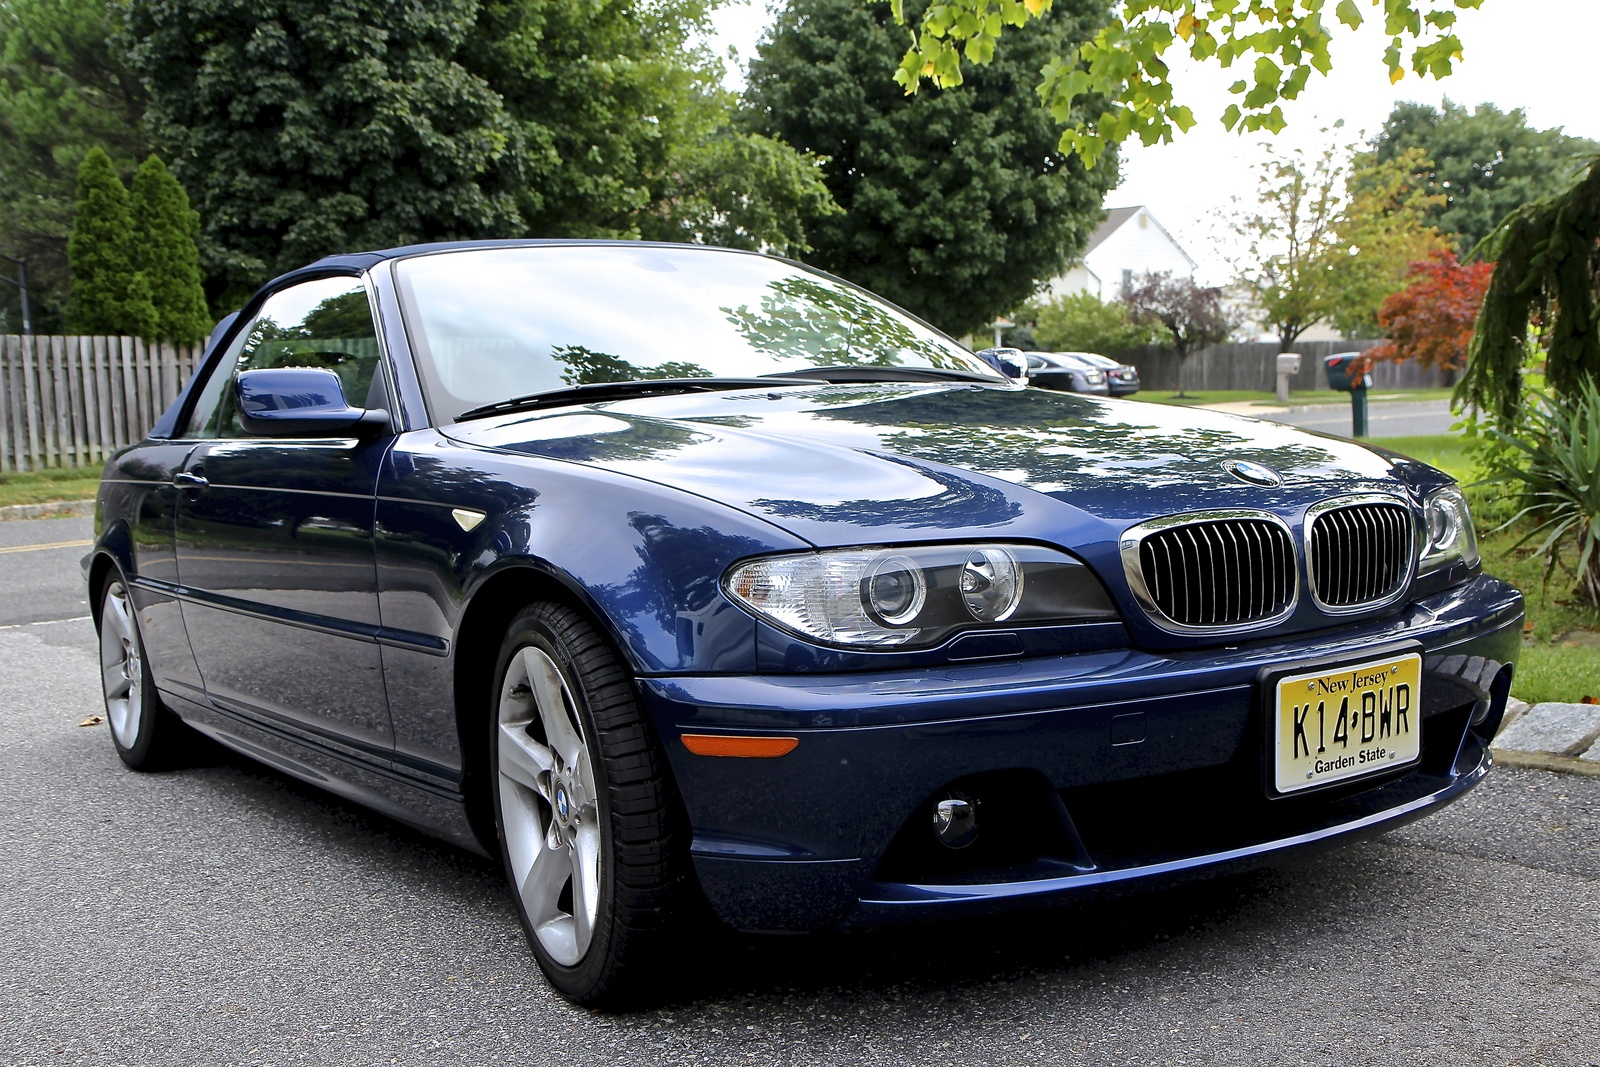 BMW 3 series 335xi 2004 photo - 11